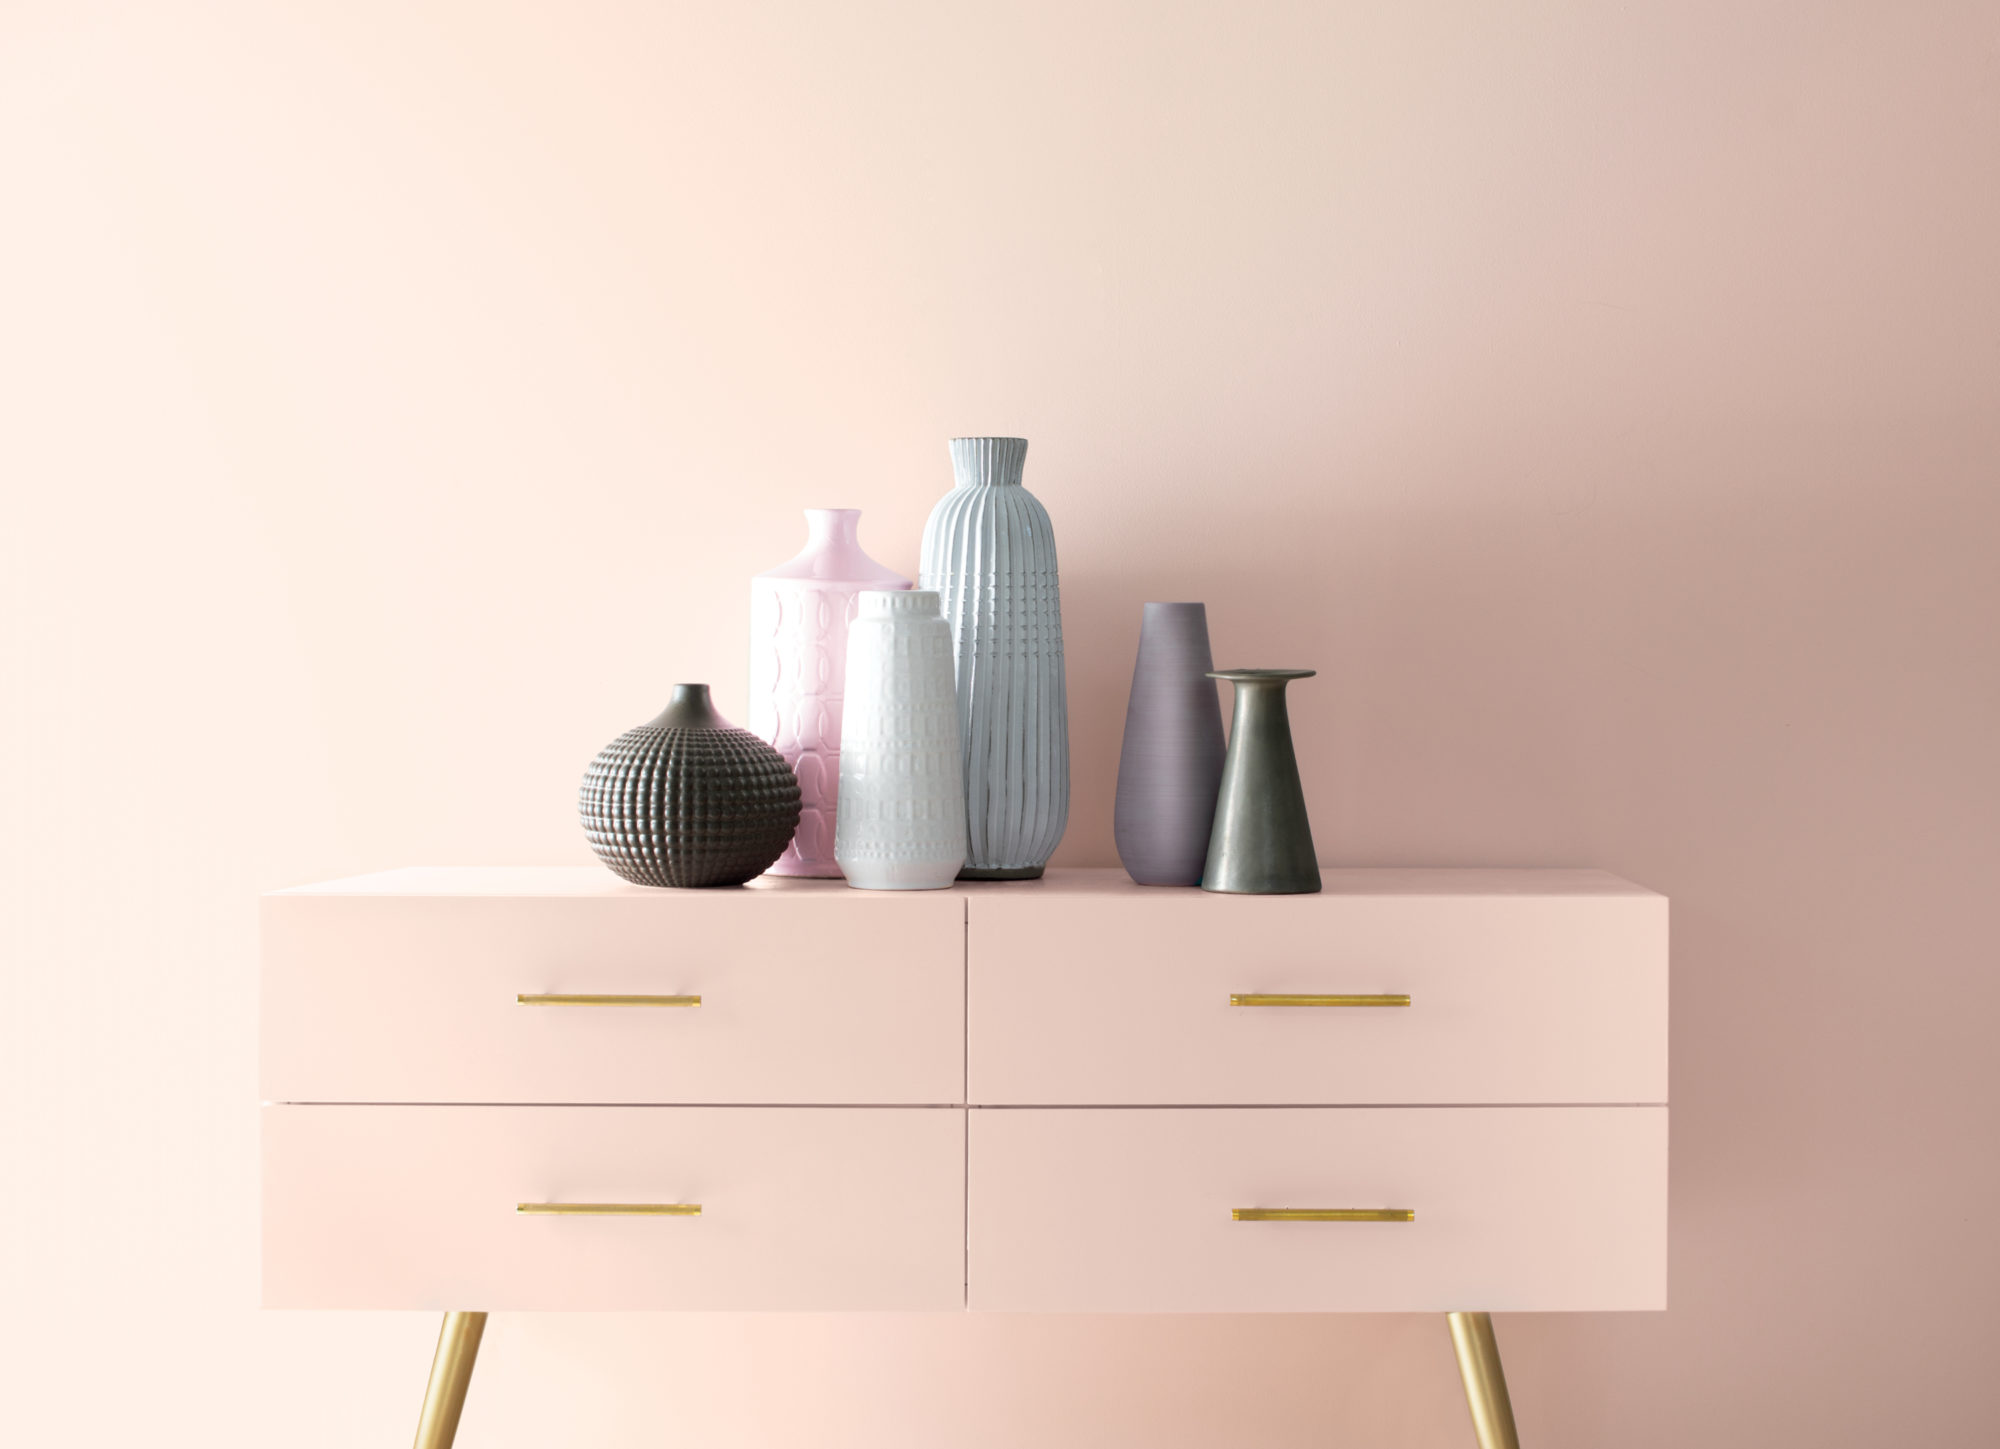 Benjamin Moore Names First Light (2102-70) As its 2020 Color of the Year